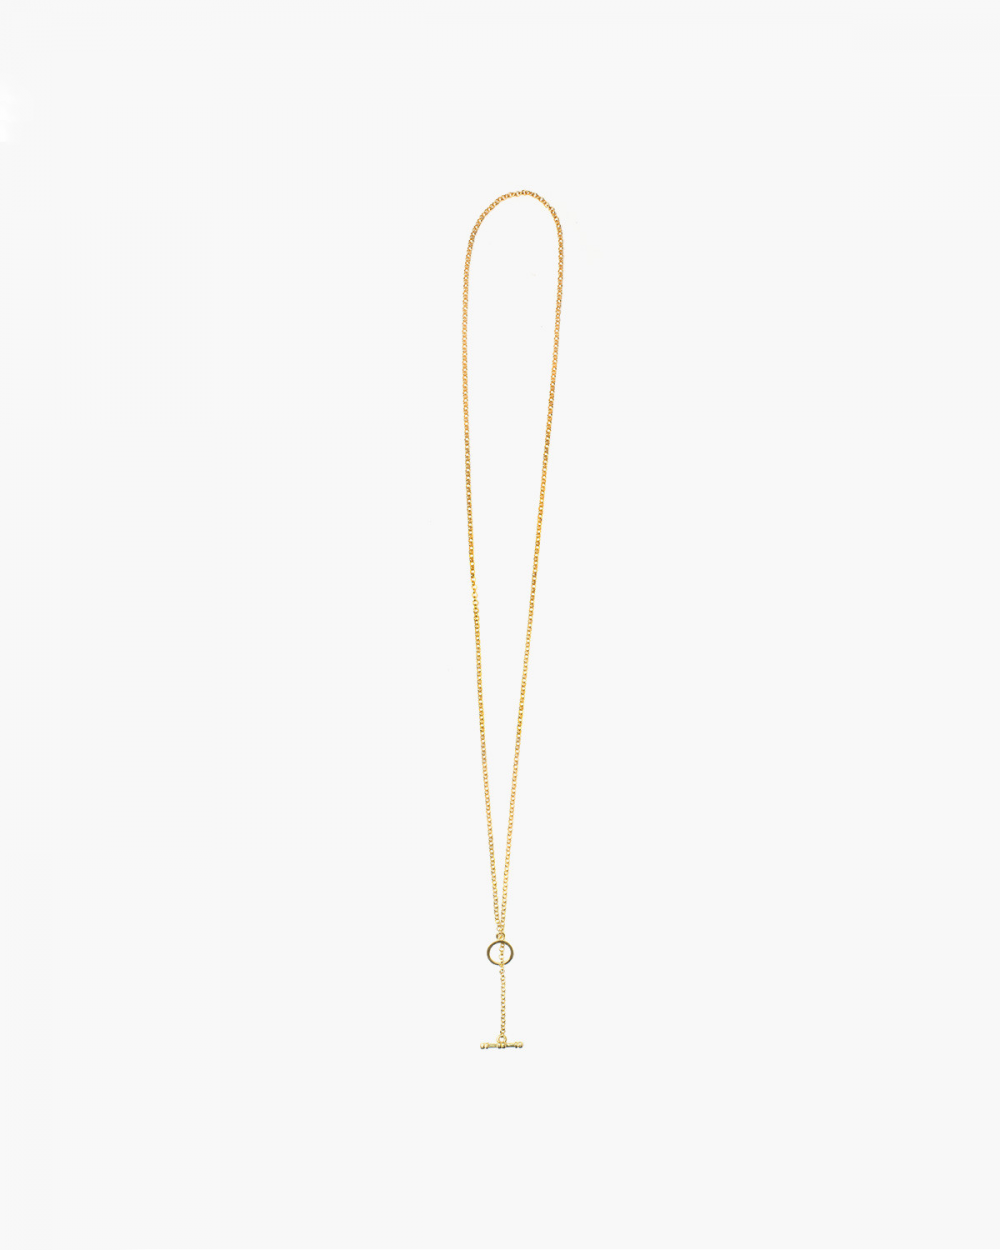 Necklaces YELLOW GOLD ROLO 300 WITH T-BAR NECKLACE - 70 NOVE25